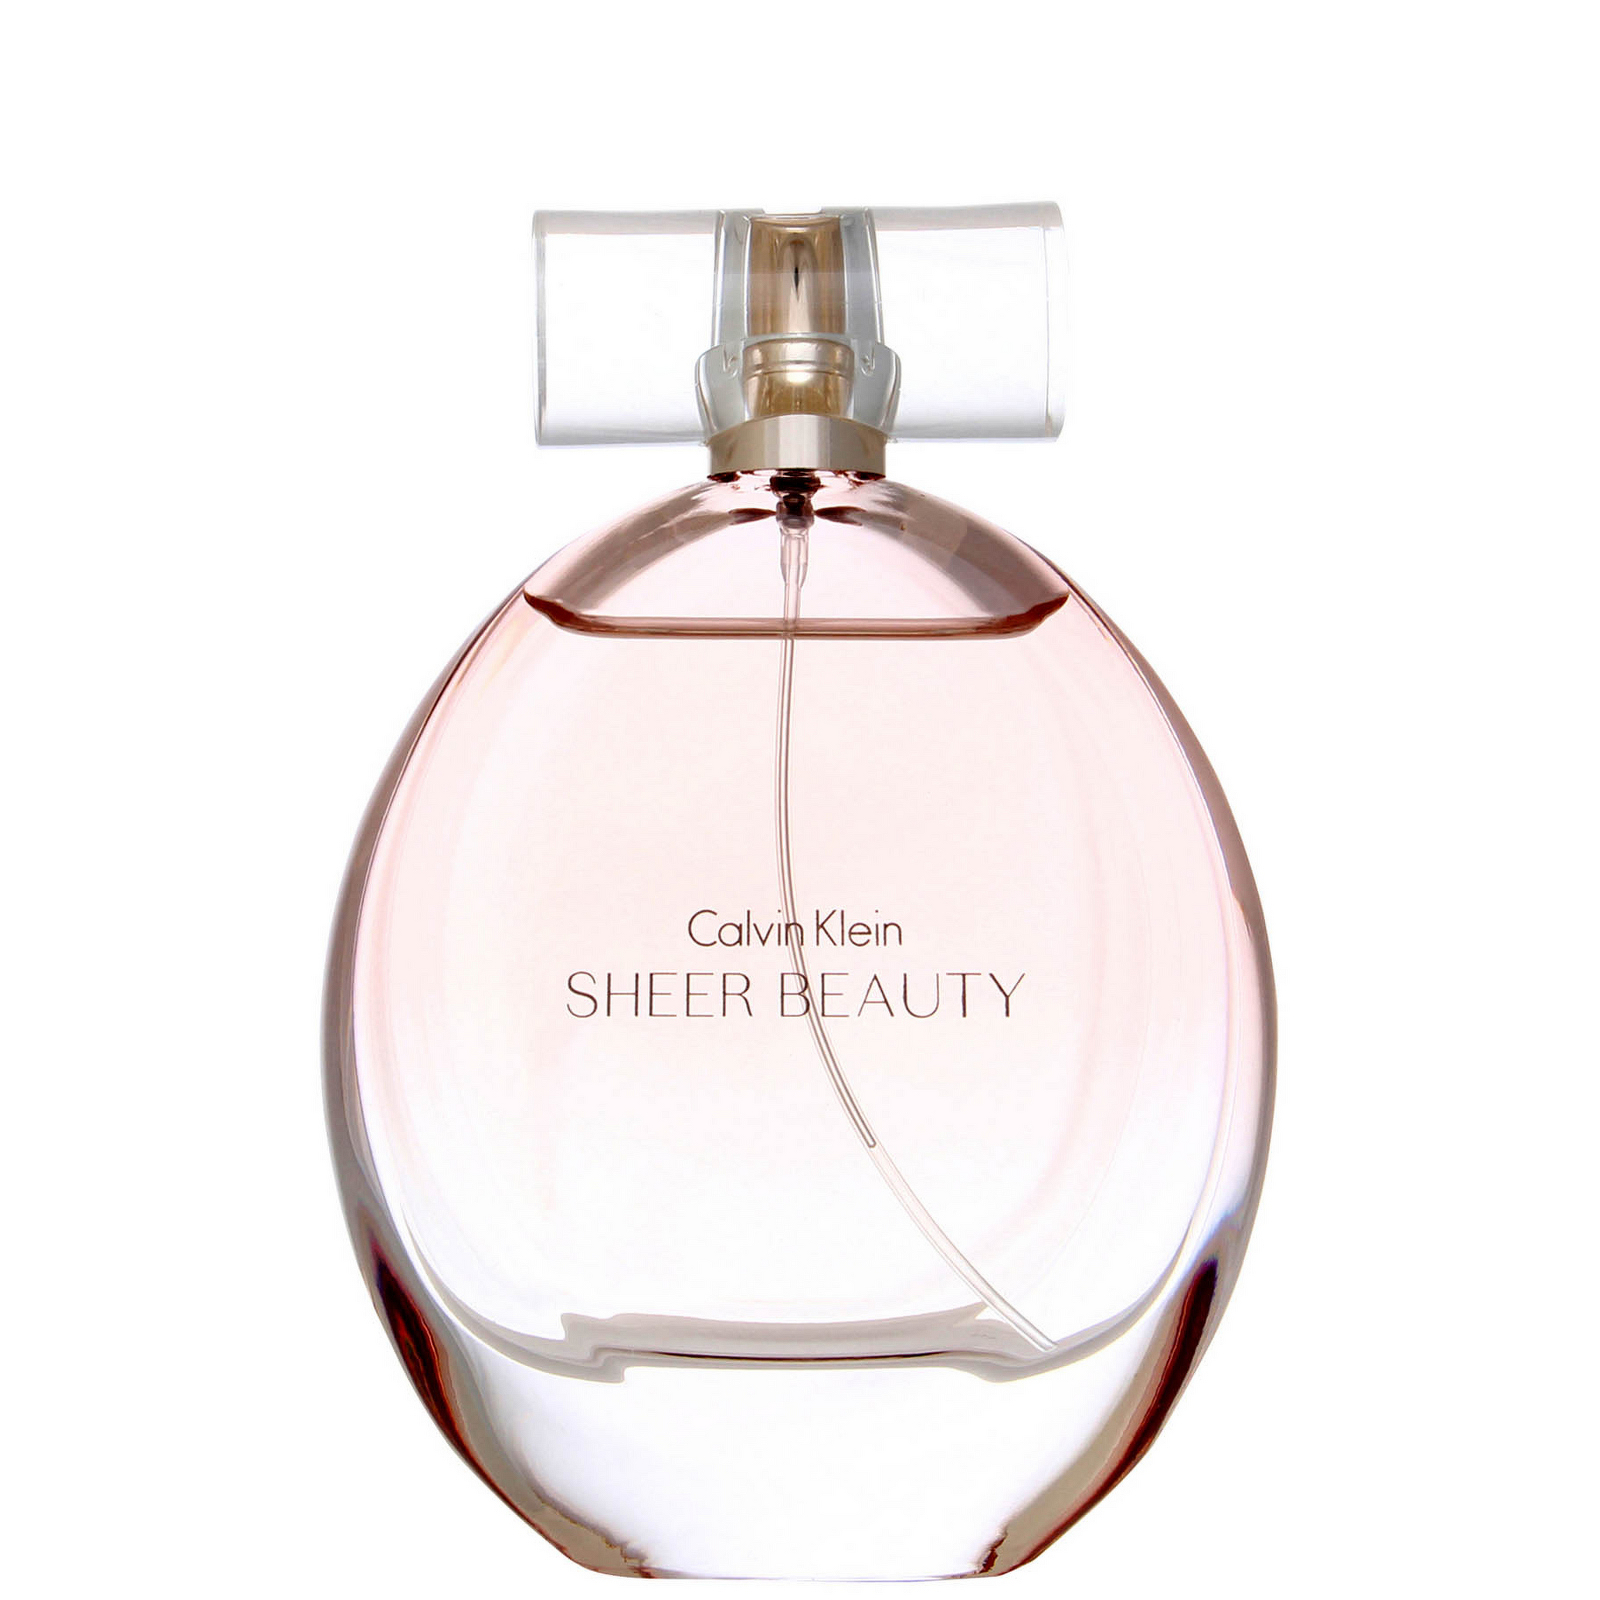 Calvin Klein Sheer Beauty Eau de Toilette Spray 50ml